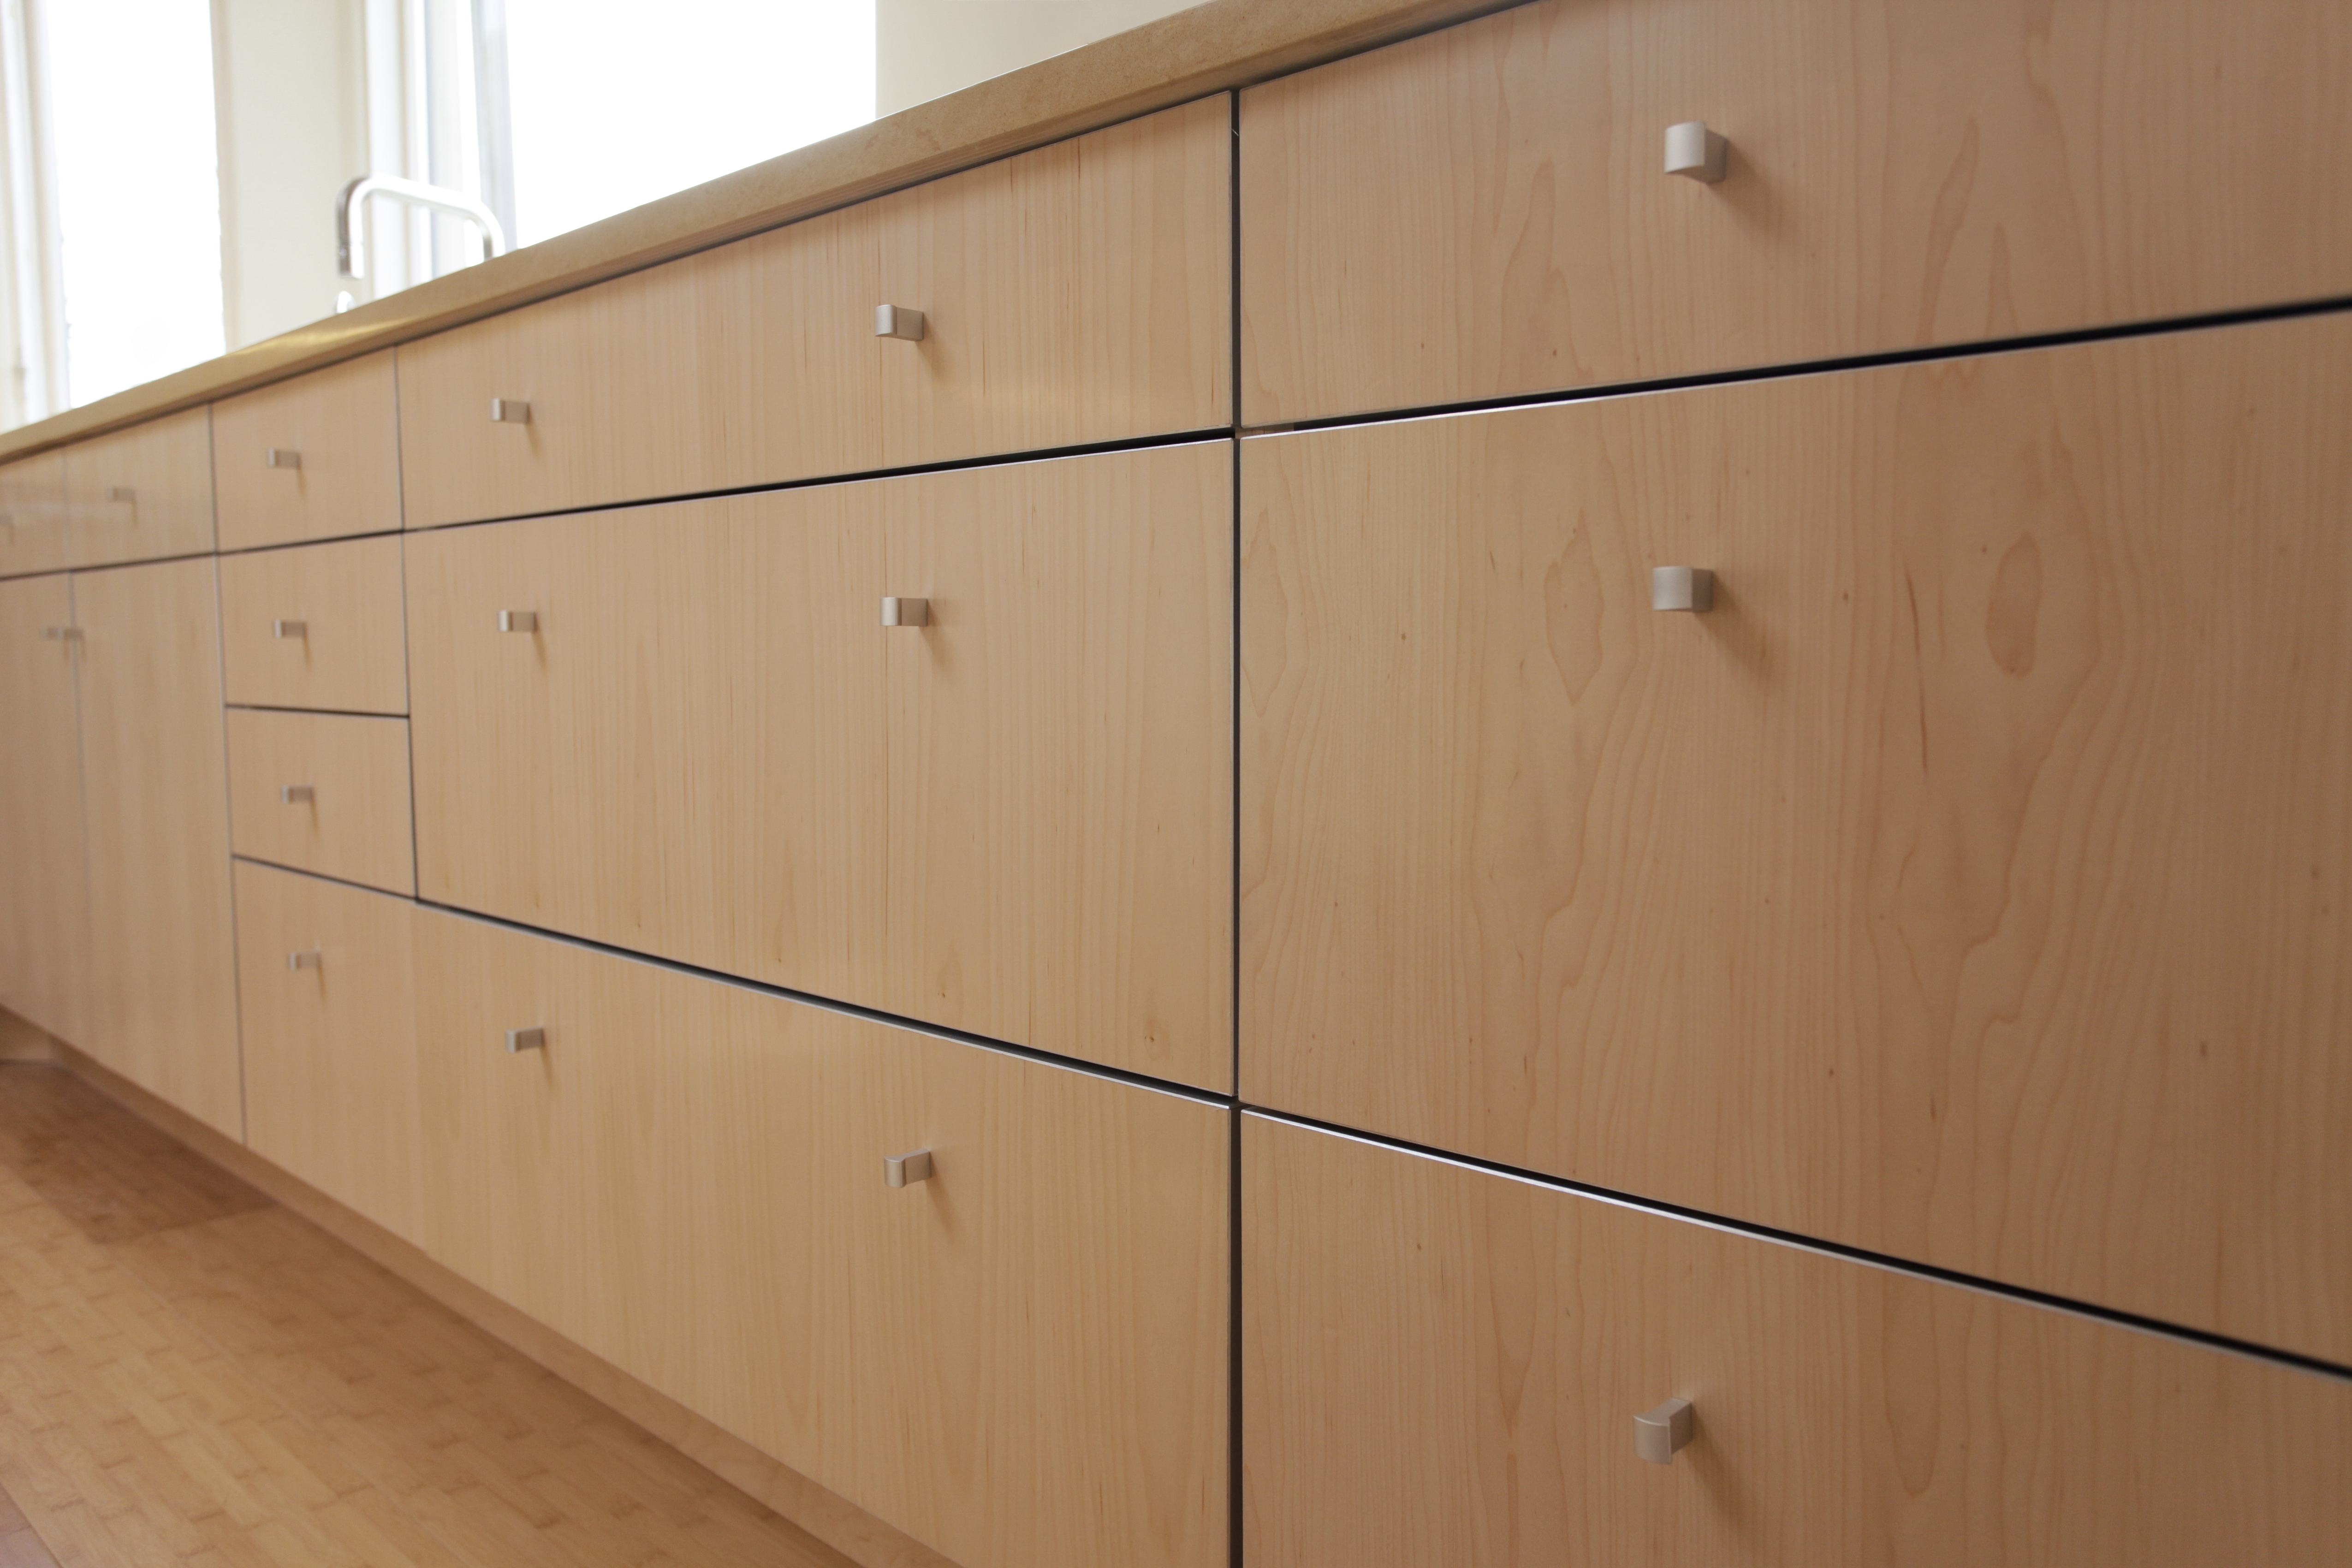 cabinets getty